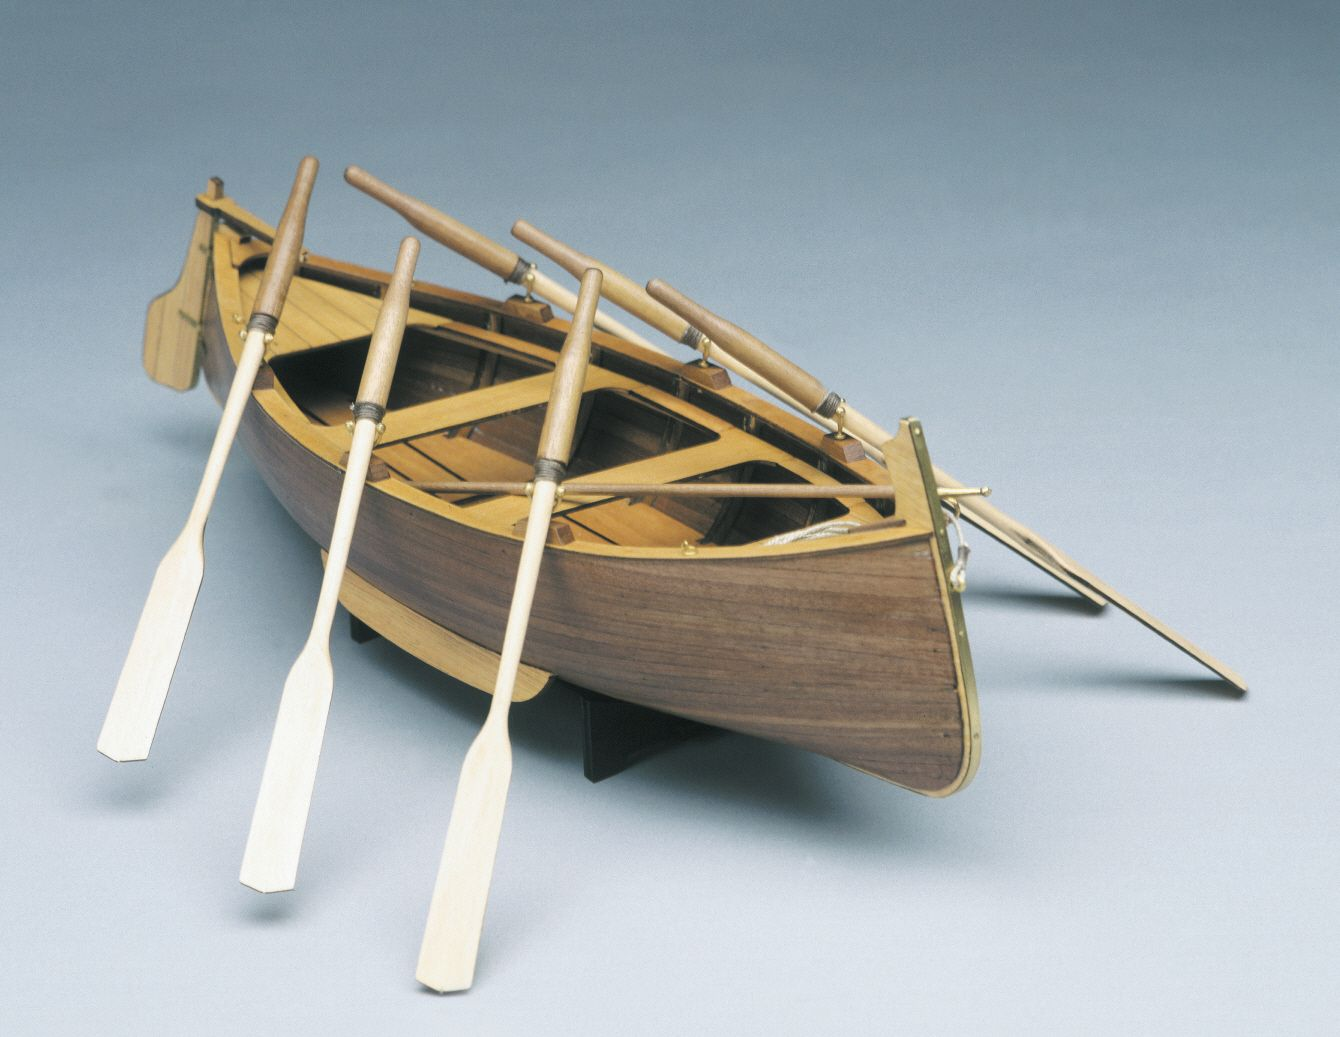 Italian Fishing Boat Kit - Mantua Models (735)